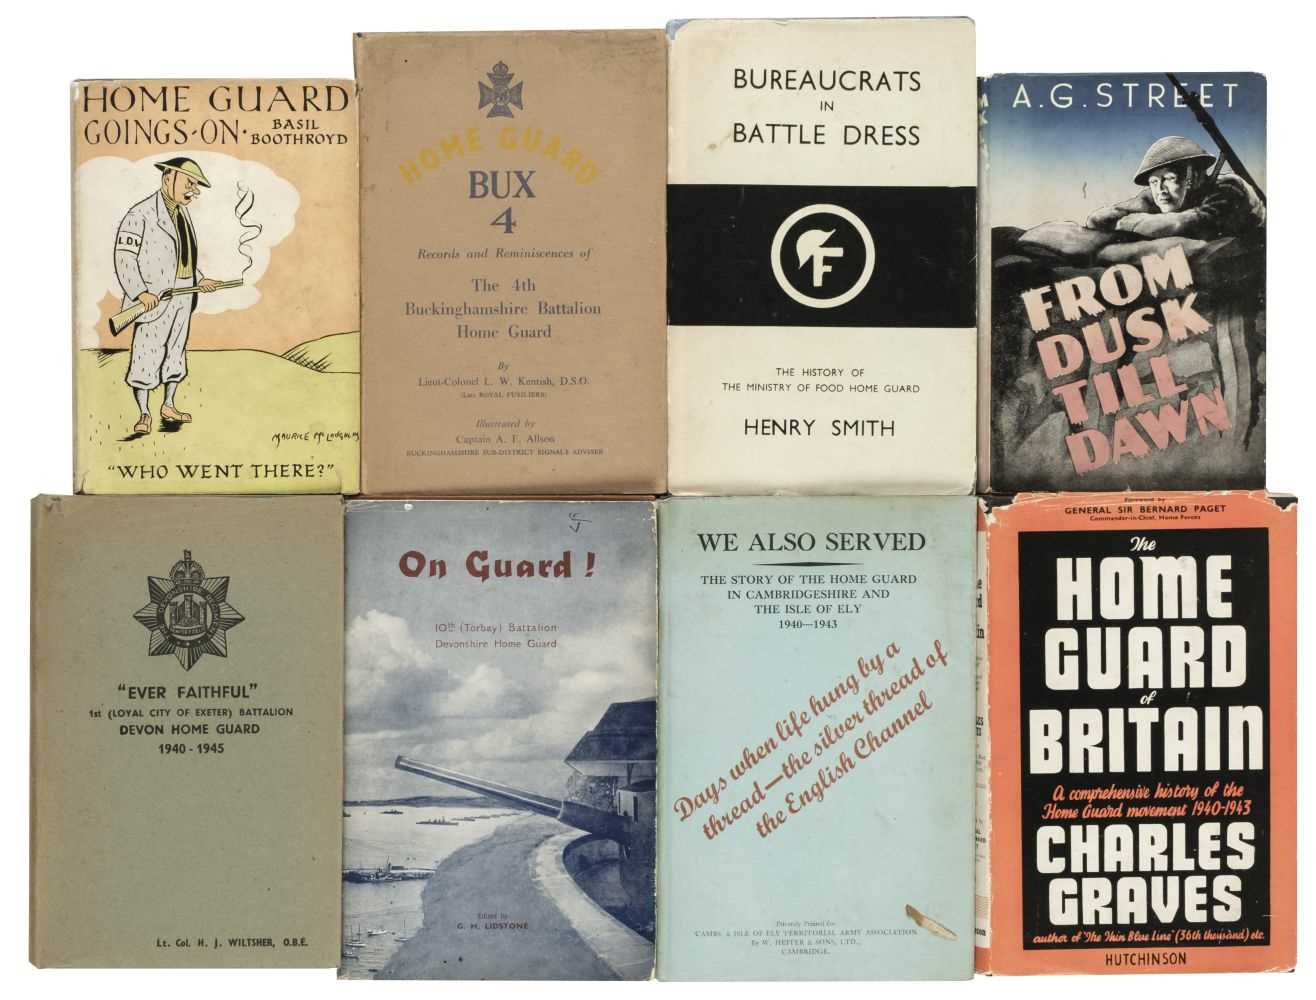 Lot 330 - Graves (Charles). The Home Guard of Britain, 1st edition, 1943